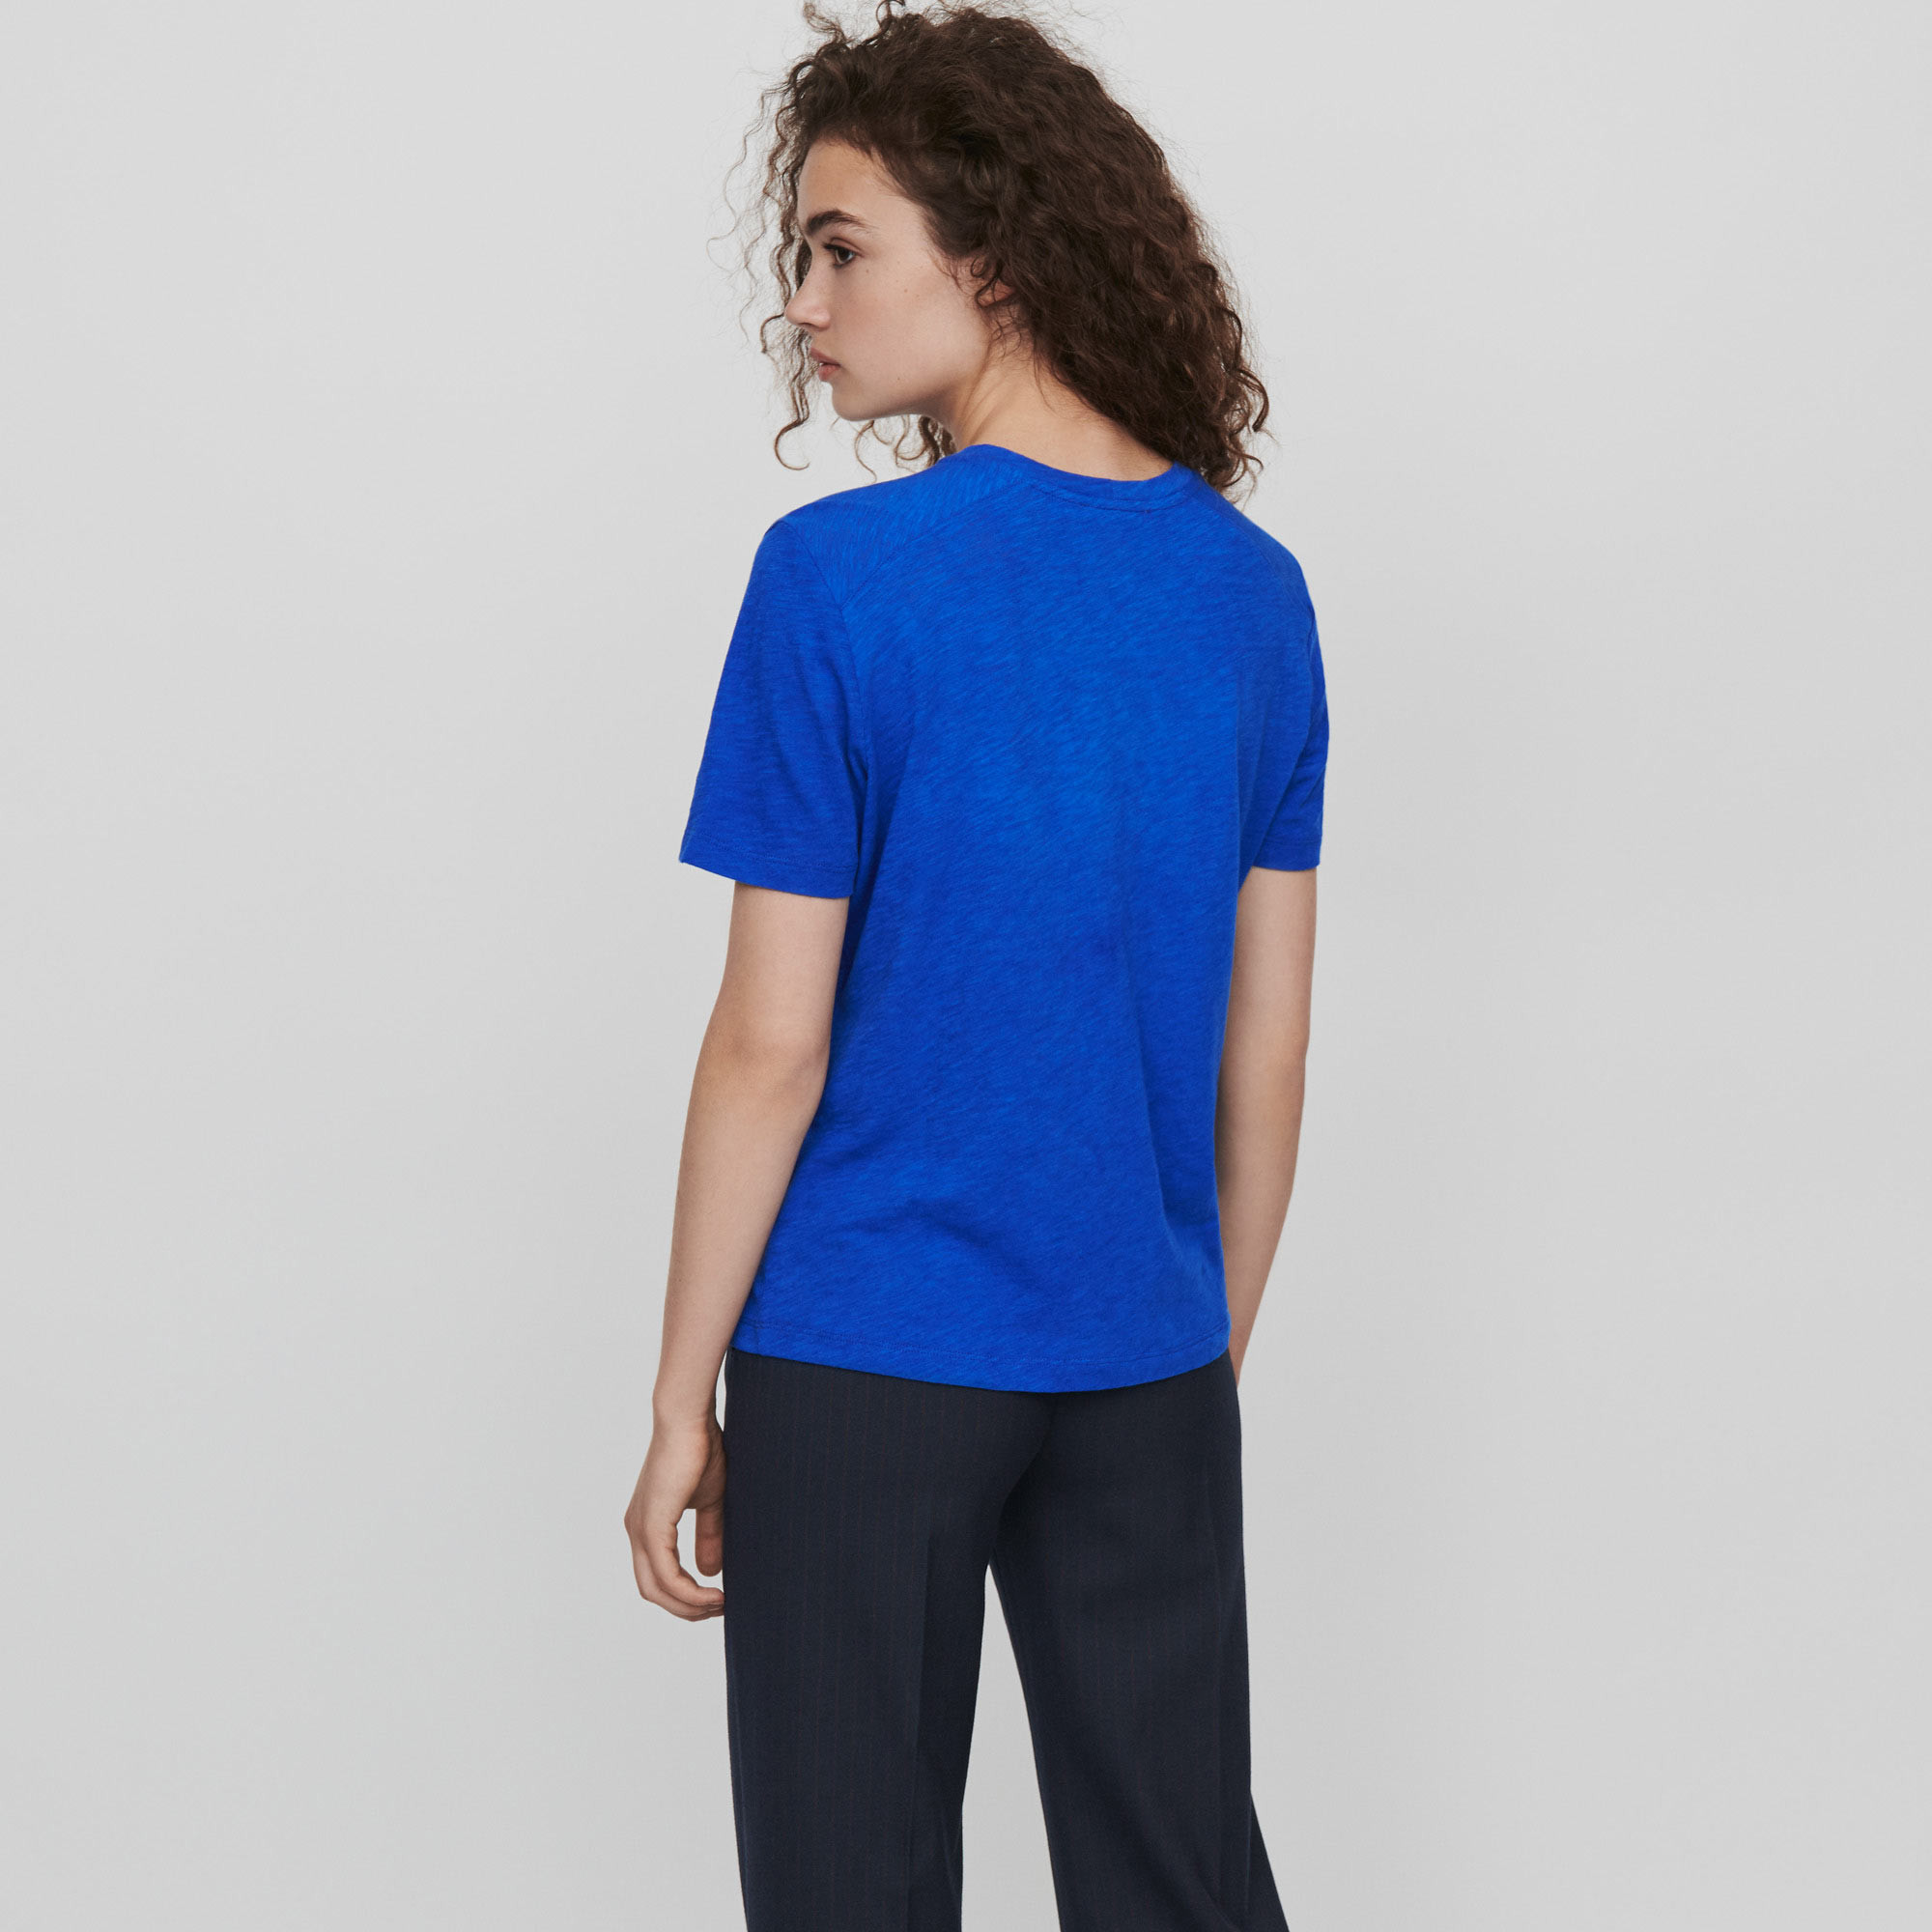 Embroidered tee shirt - Blue